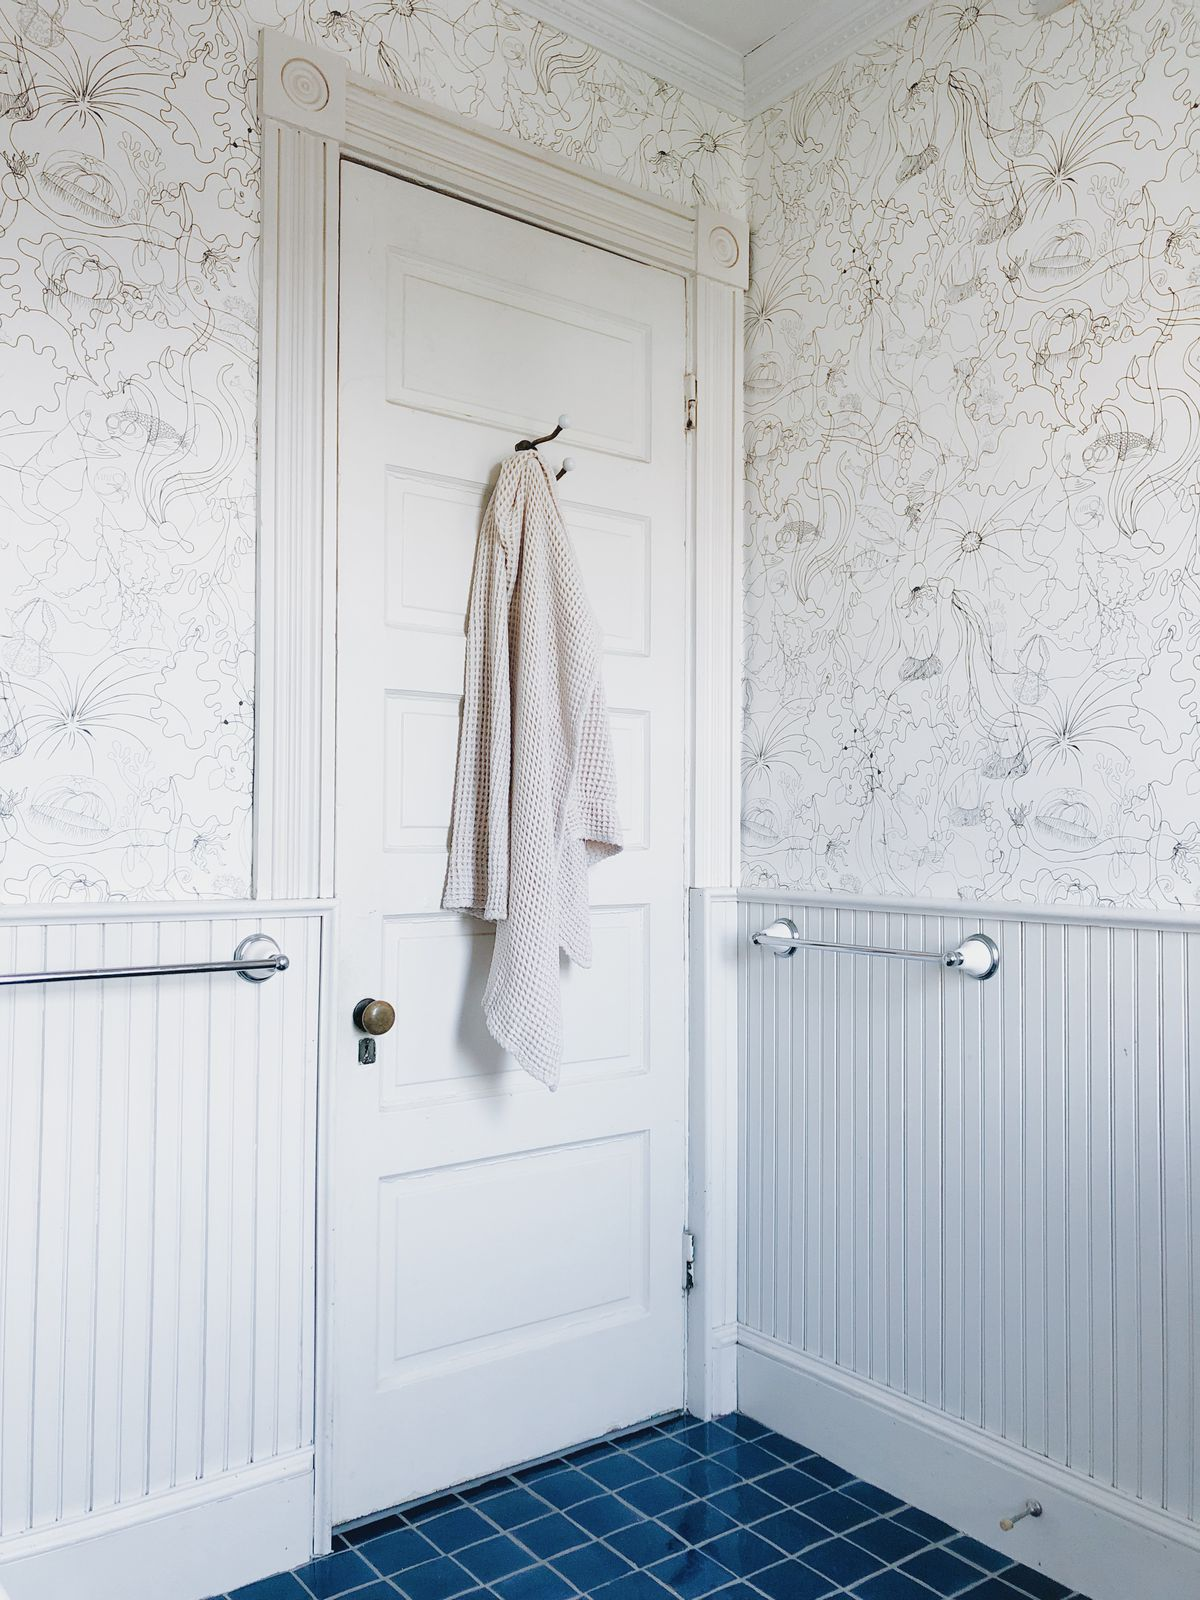 New minimalist white wallpaper covers the wall of the bathroom, which has beaded boarded paneling and royal blue tile.